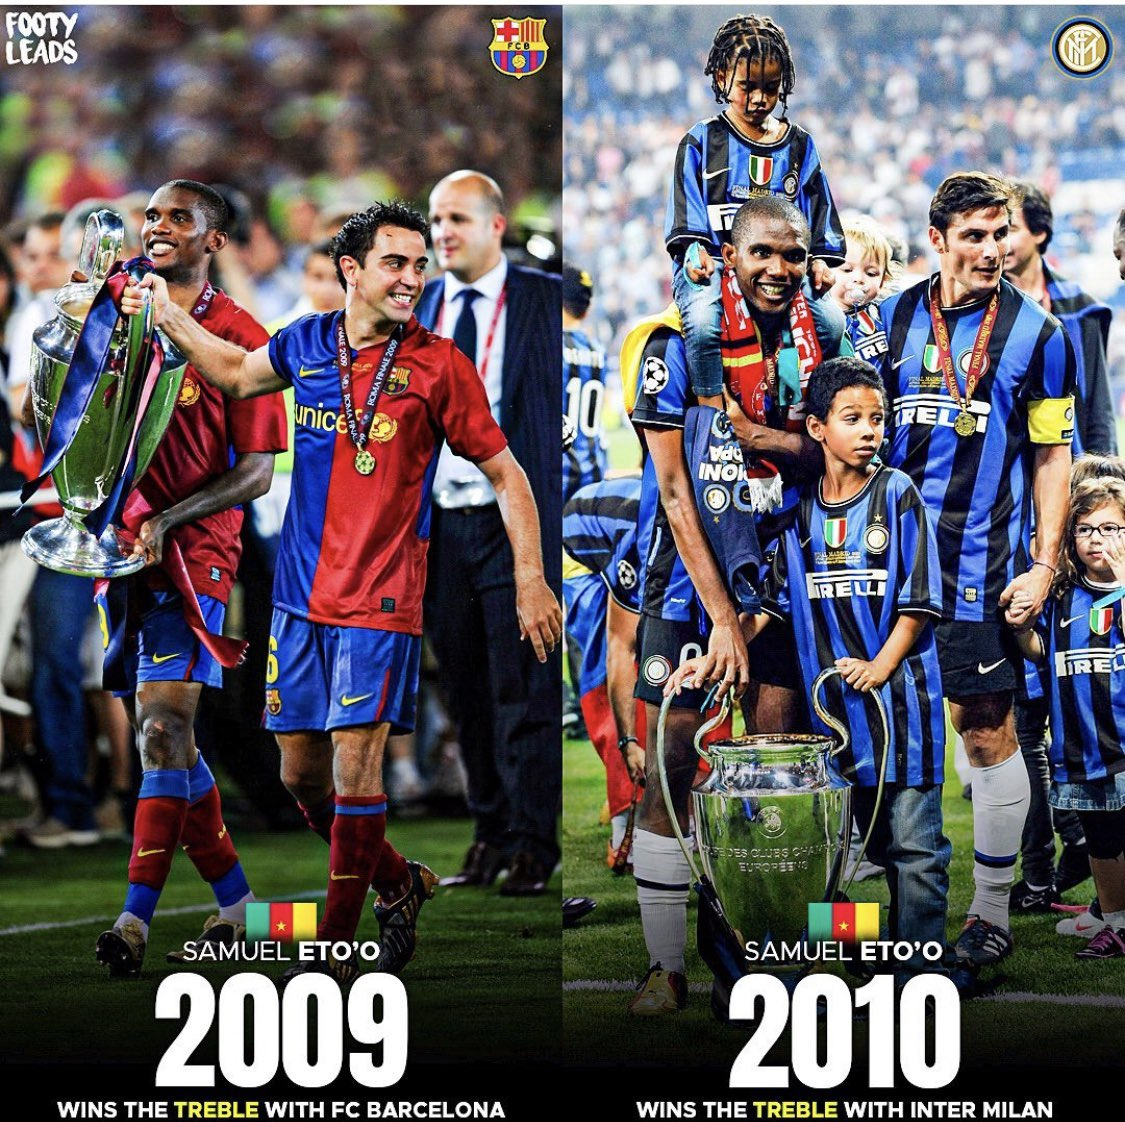 Our ex striker @setoo9 is the only player that has one back to back trebles. Funny enough beating Chelsea in both seasons Champions League campaigns.